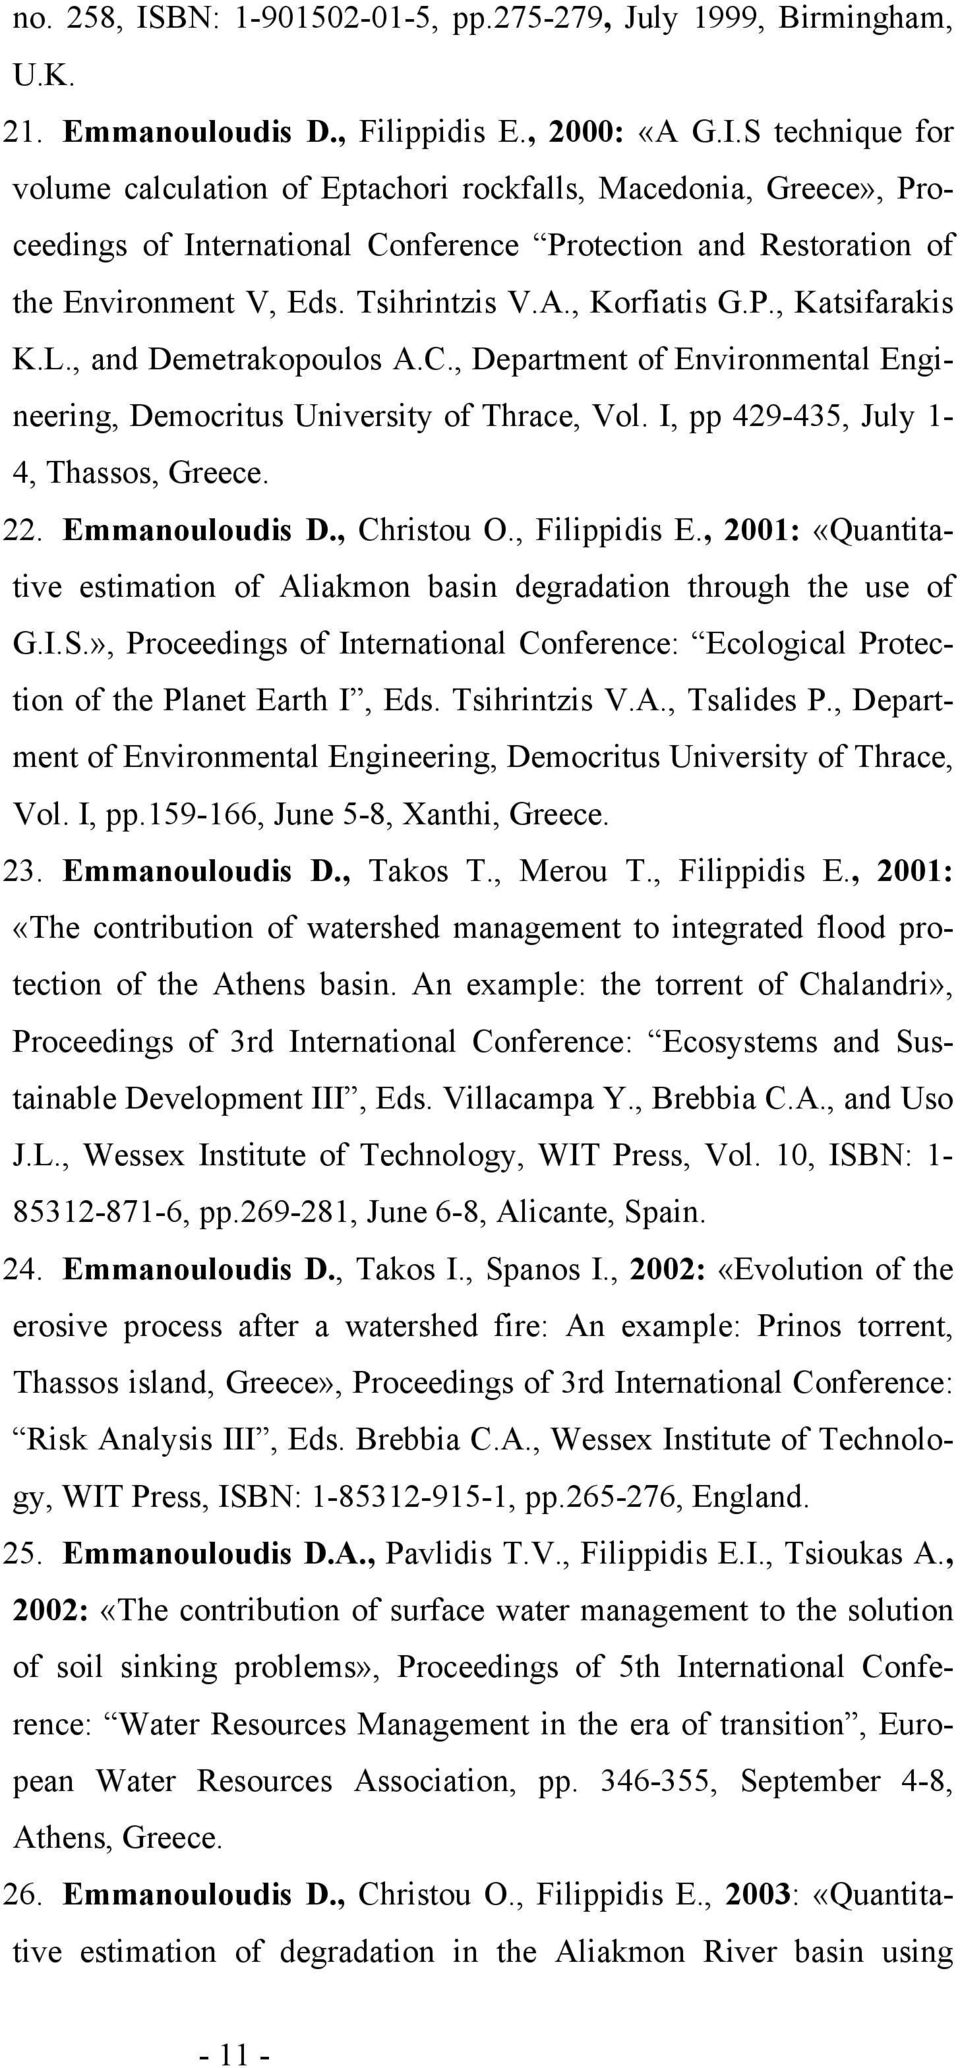 22. Emmanouloudis D., Christou O., Filippidis E., 2001: «Quantitative estimation of Aliakmon basin degradation through the use of G.I.S.